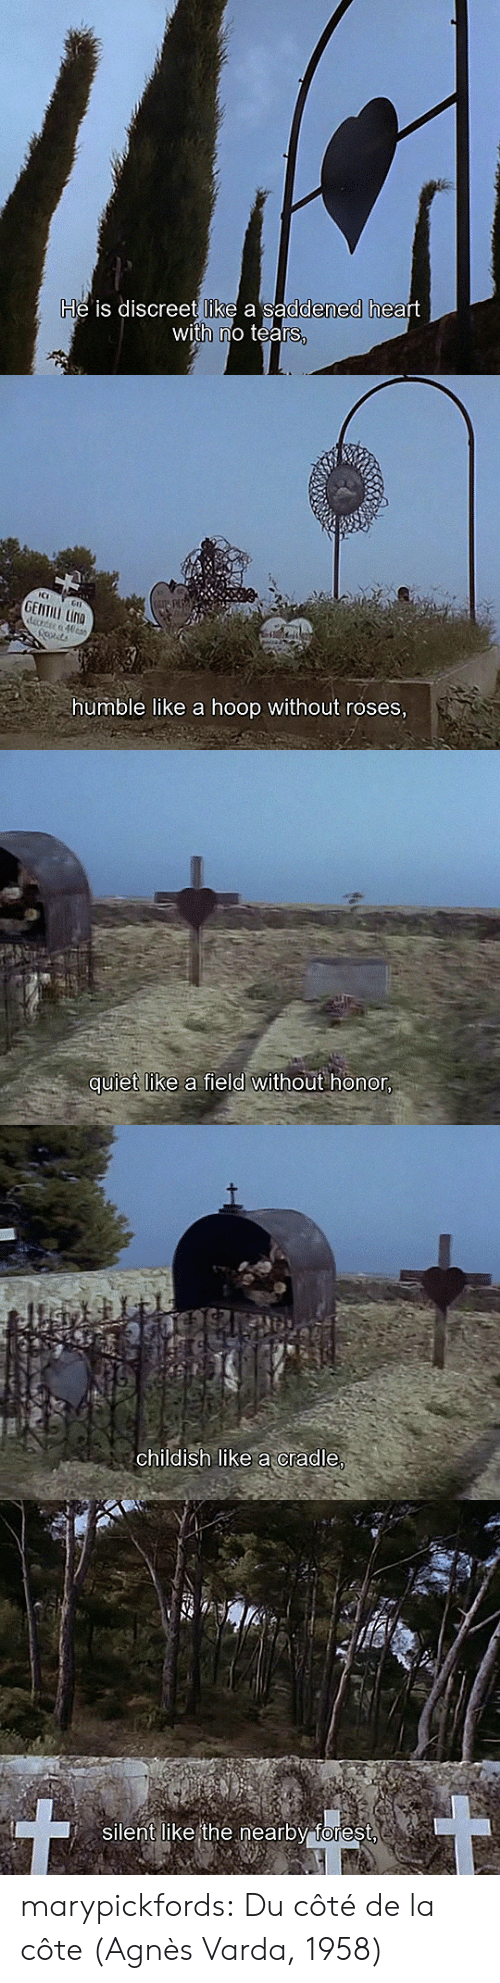 Hoop: He is discreet like a saddened heart  with no tears,   GENTILL LINA  drde 40ta  humble like a hoop without roses,   quiet like a field without honor,   childish like acradle,   silent like the nearby forest marypickfords: Du côté de la côte (Agnès Varda, 1958)